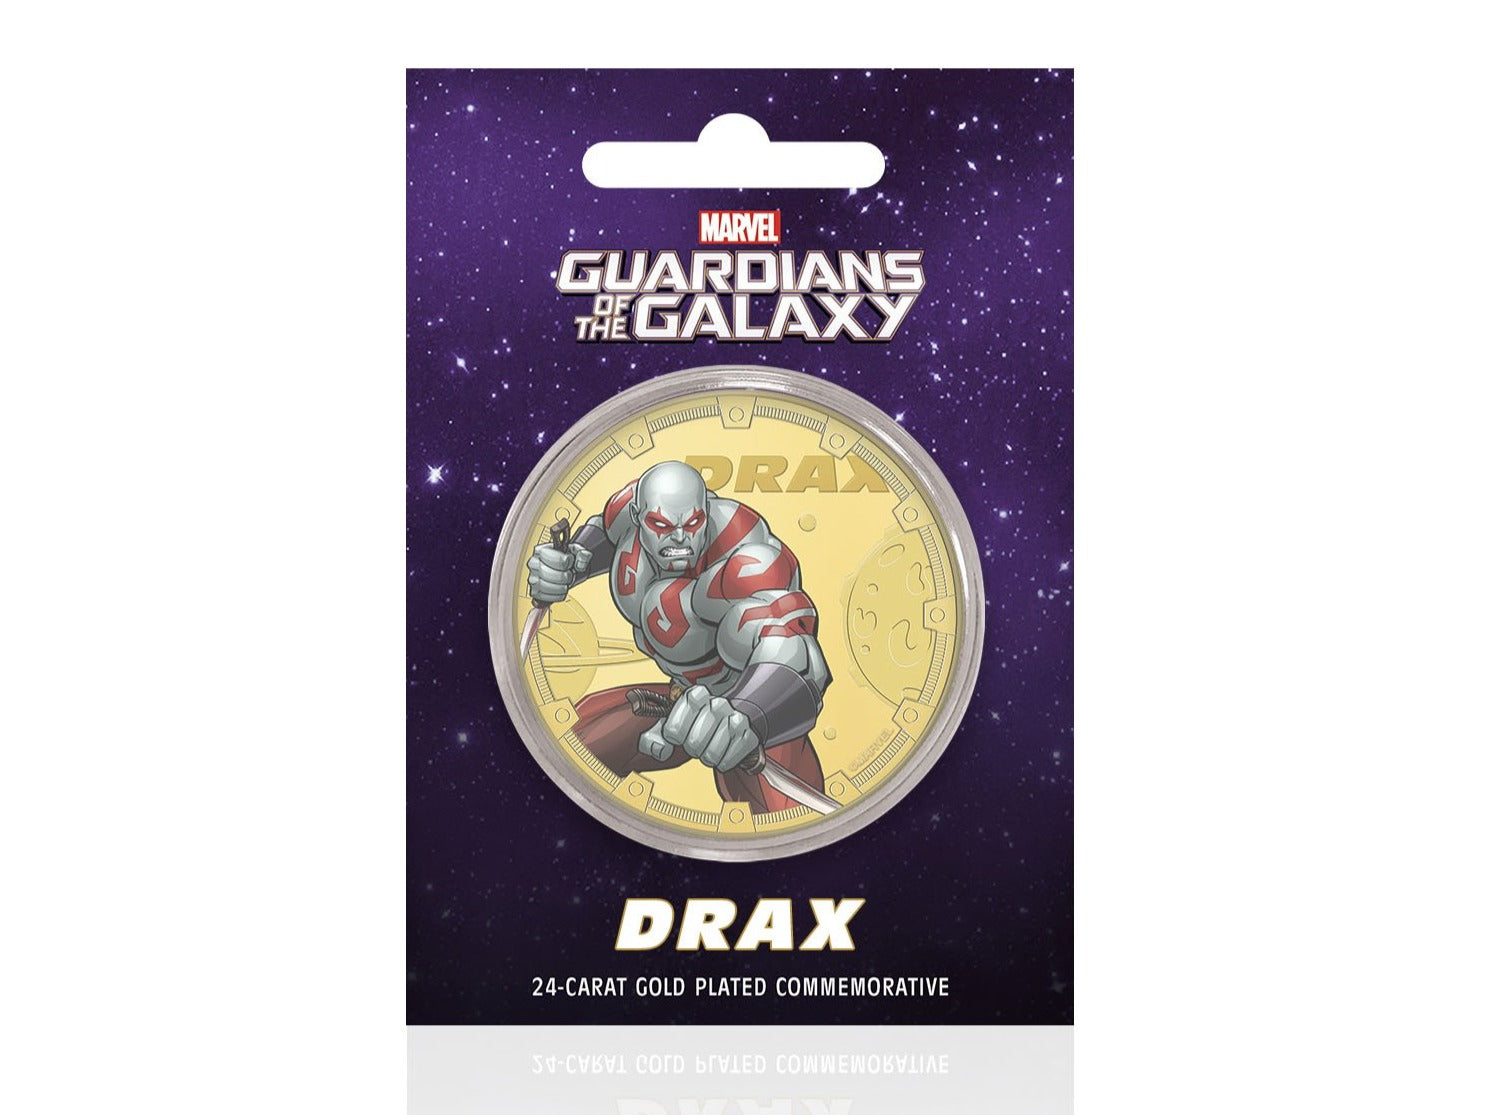 Marvel Guardianes de la Galaxia - Drax - Moneda / Medalla conmemorativa acuñada con baño en Oro 24 quilates y coloreada a 4 colores - 44mm